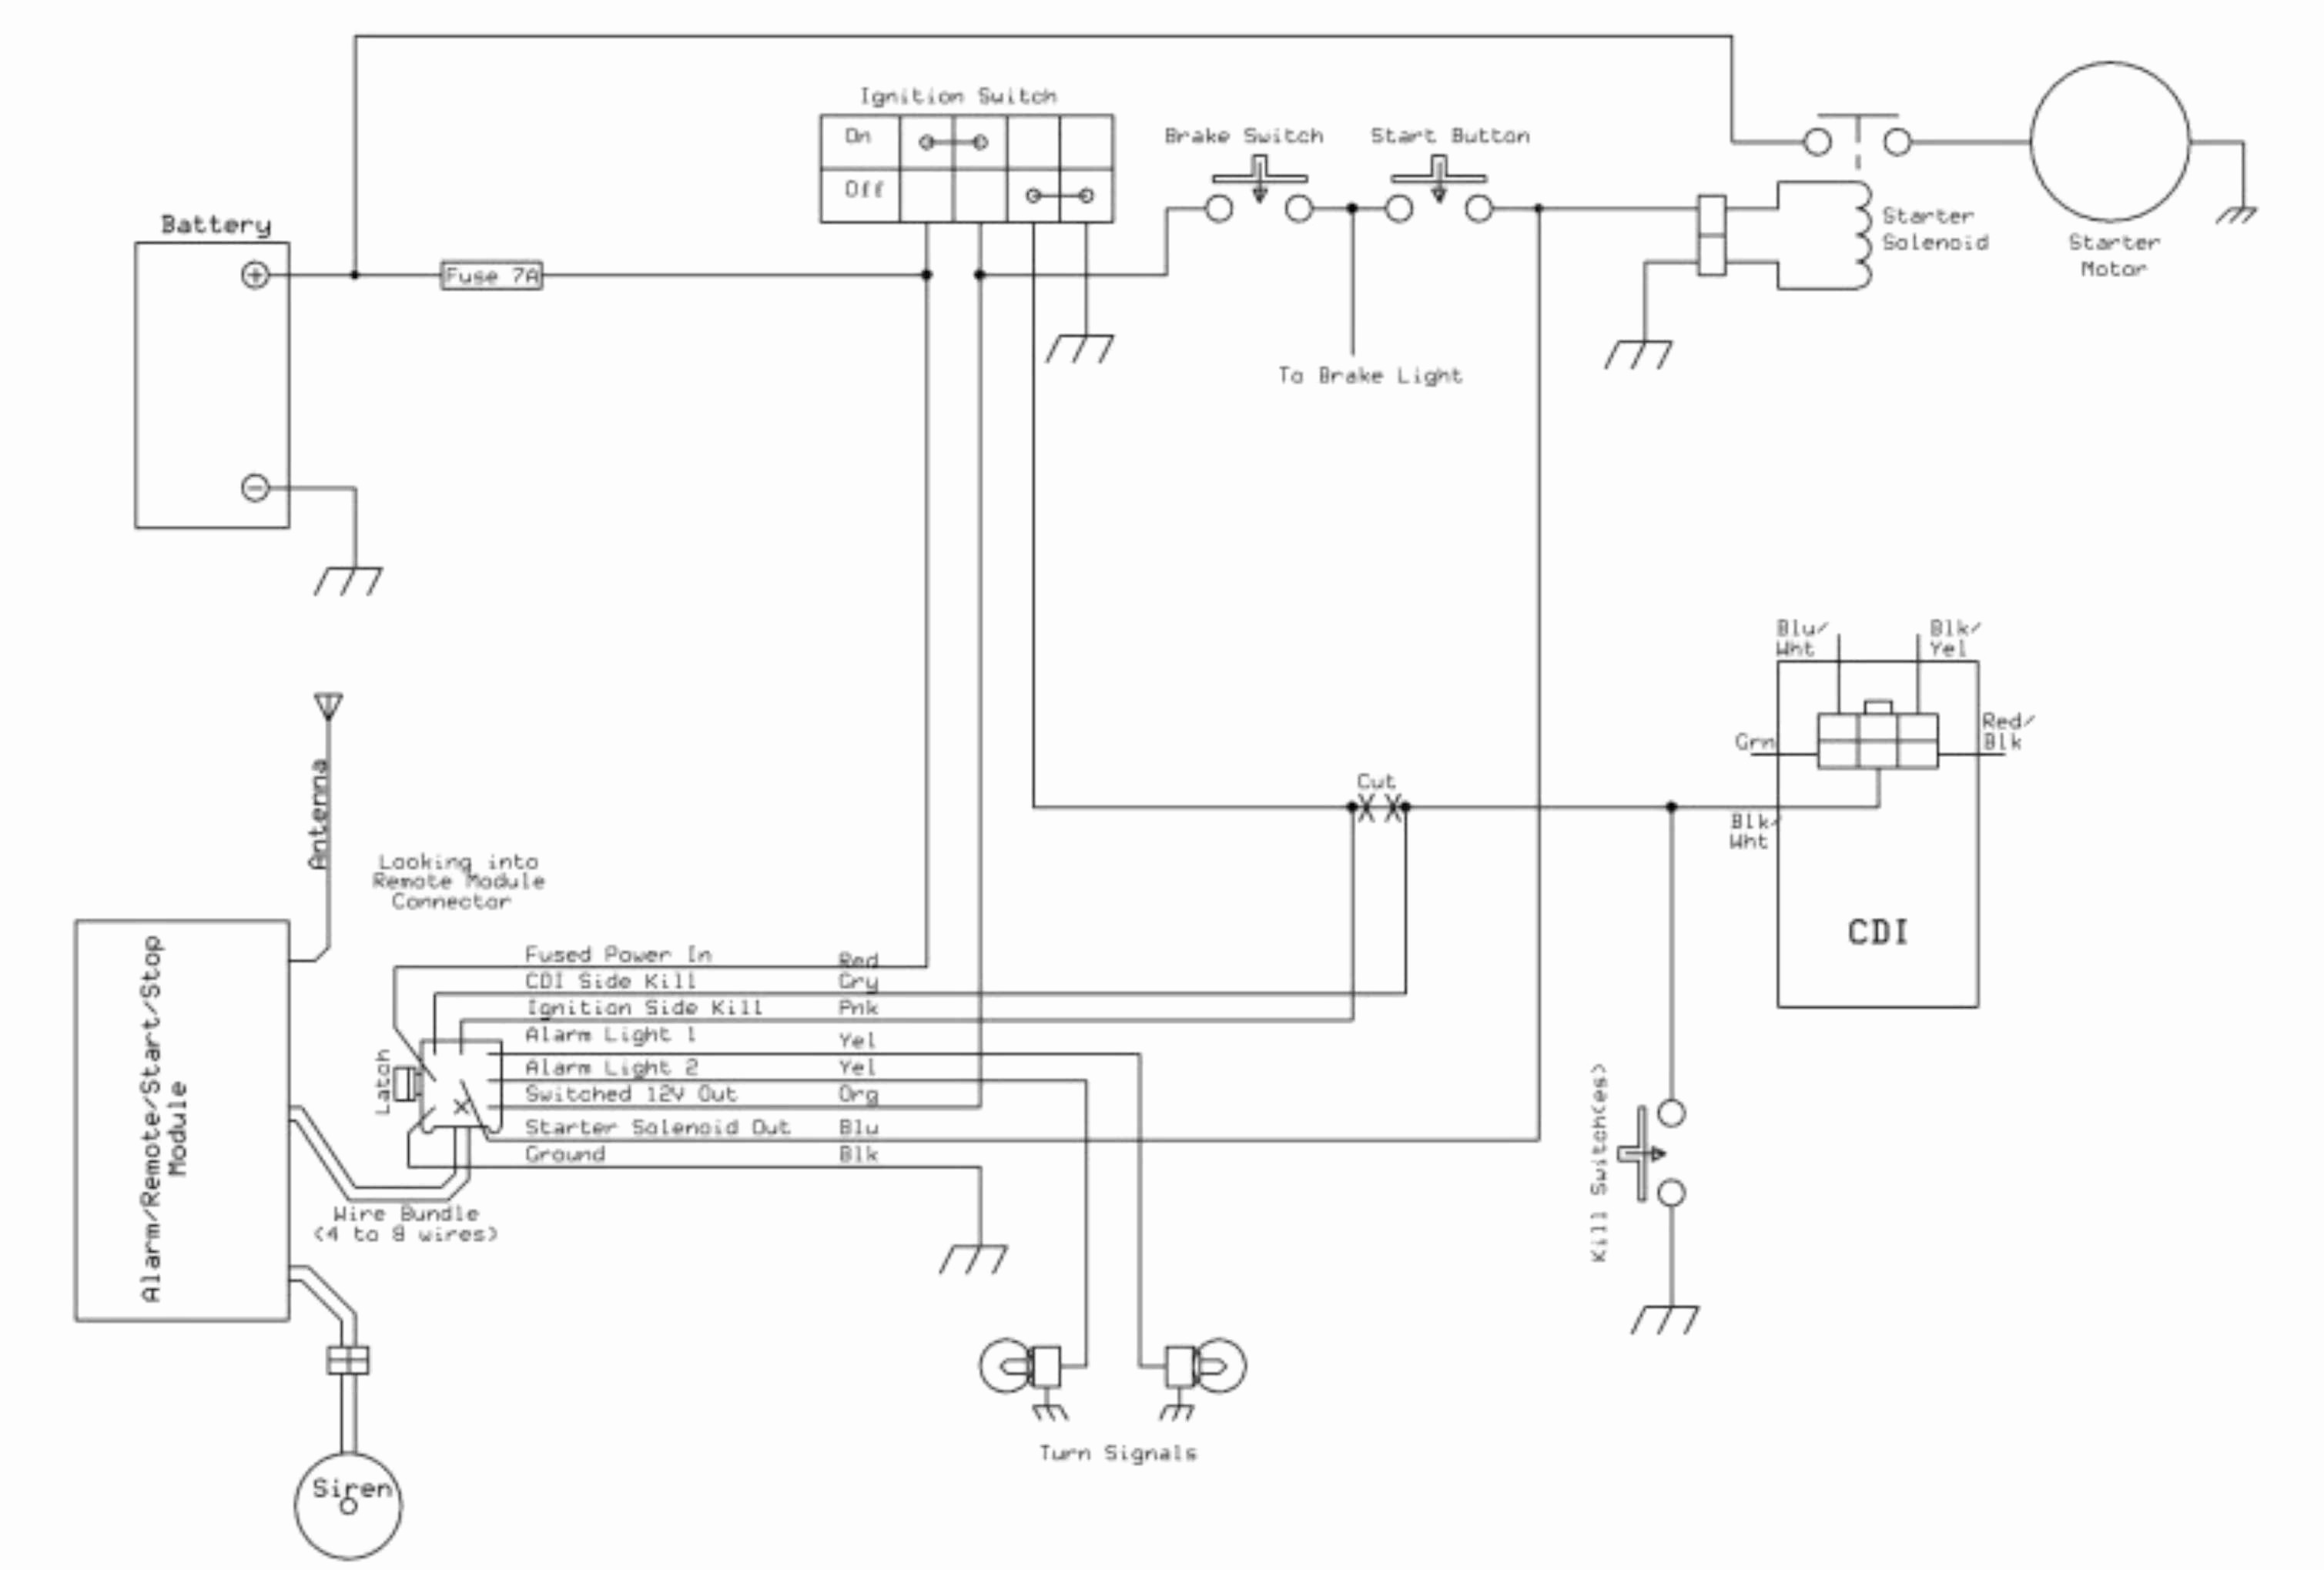 Full Size of Wiring Diagram Chinese Atv Wiring Diagram New Awesome Taotao 50cc Scooter Wiring